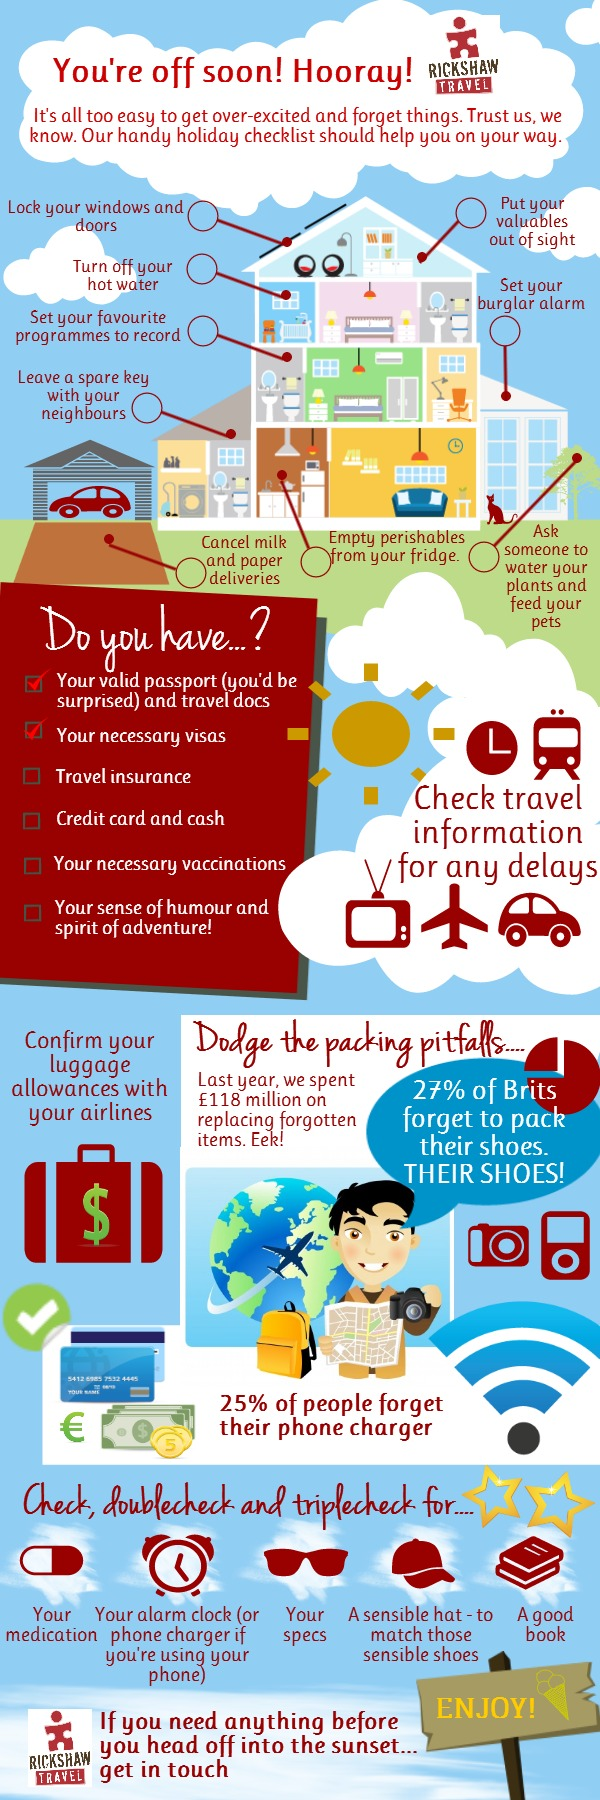 Rickshaw Travel packing infographic